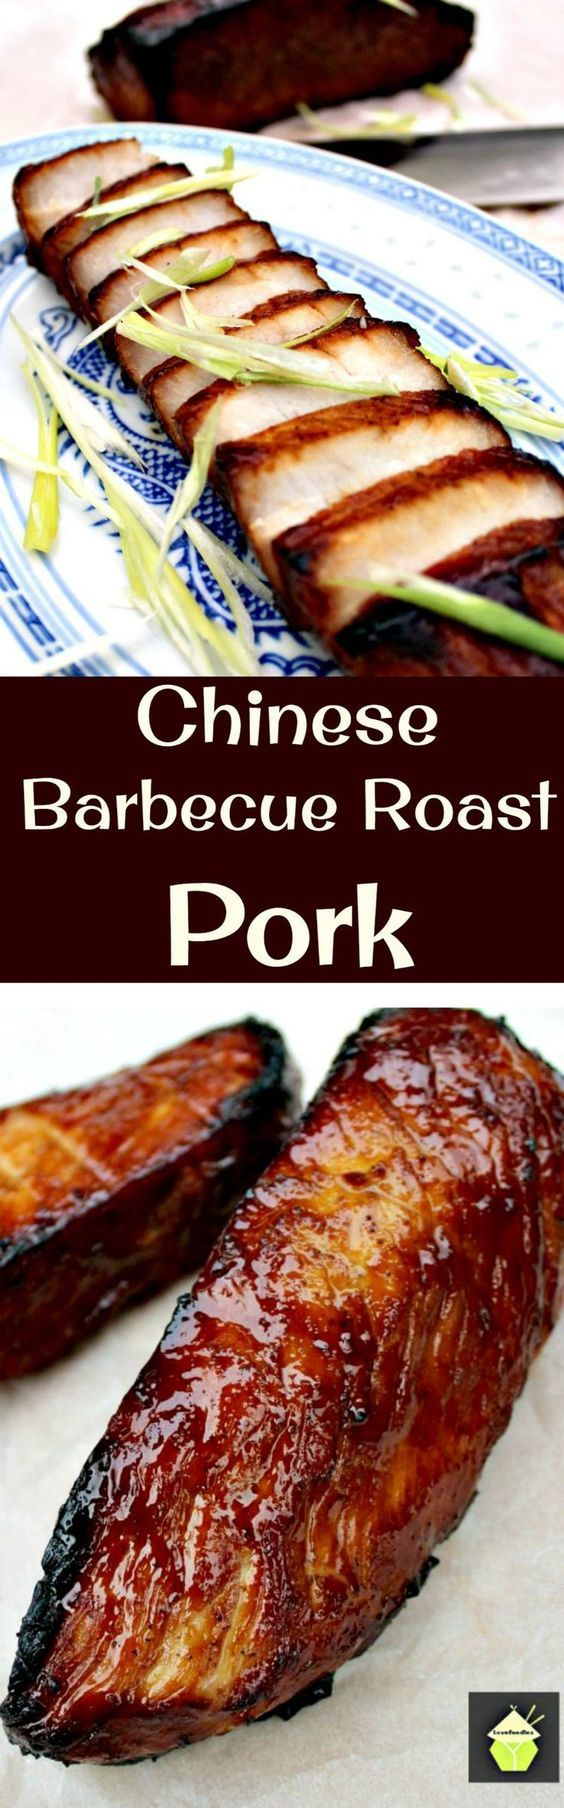 Chinese Barbecue Pork (Char Sui Pork) is a delicious recipe full of flavor. It's sticky sweet and slightly caramelised and goes perfect with a bowl of noodles fried rice or simply eaten on it's own as an appetizer!